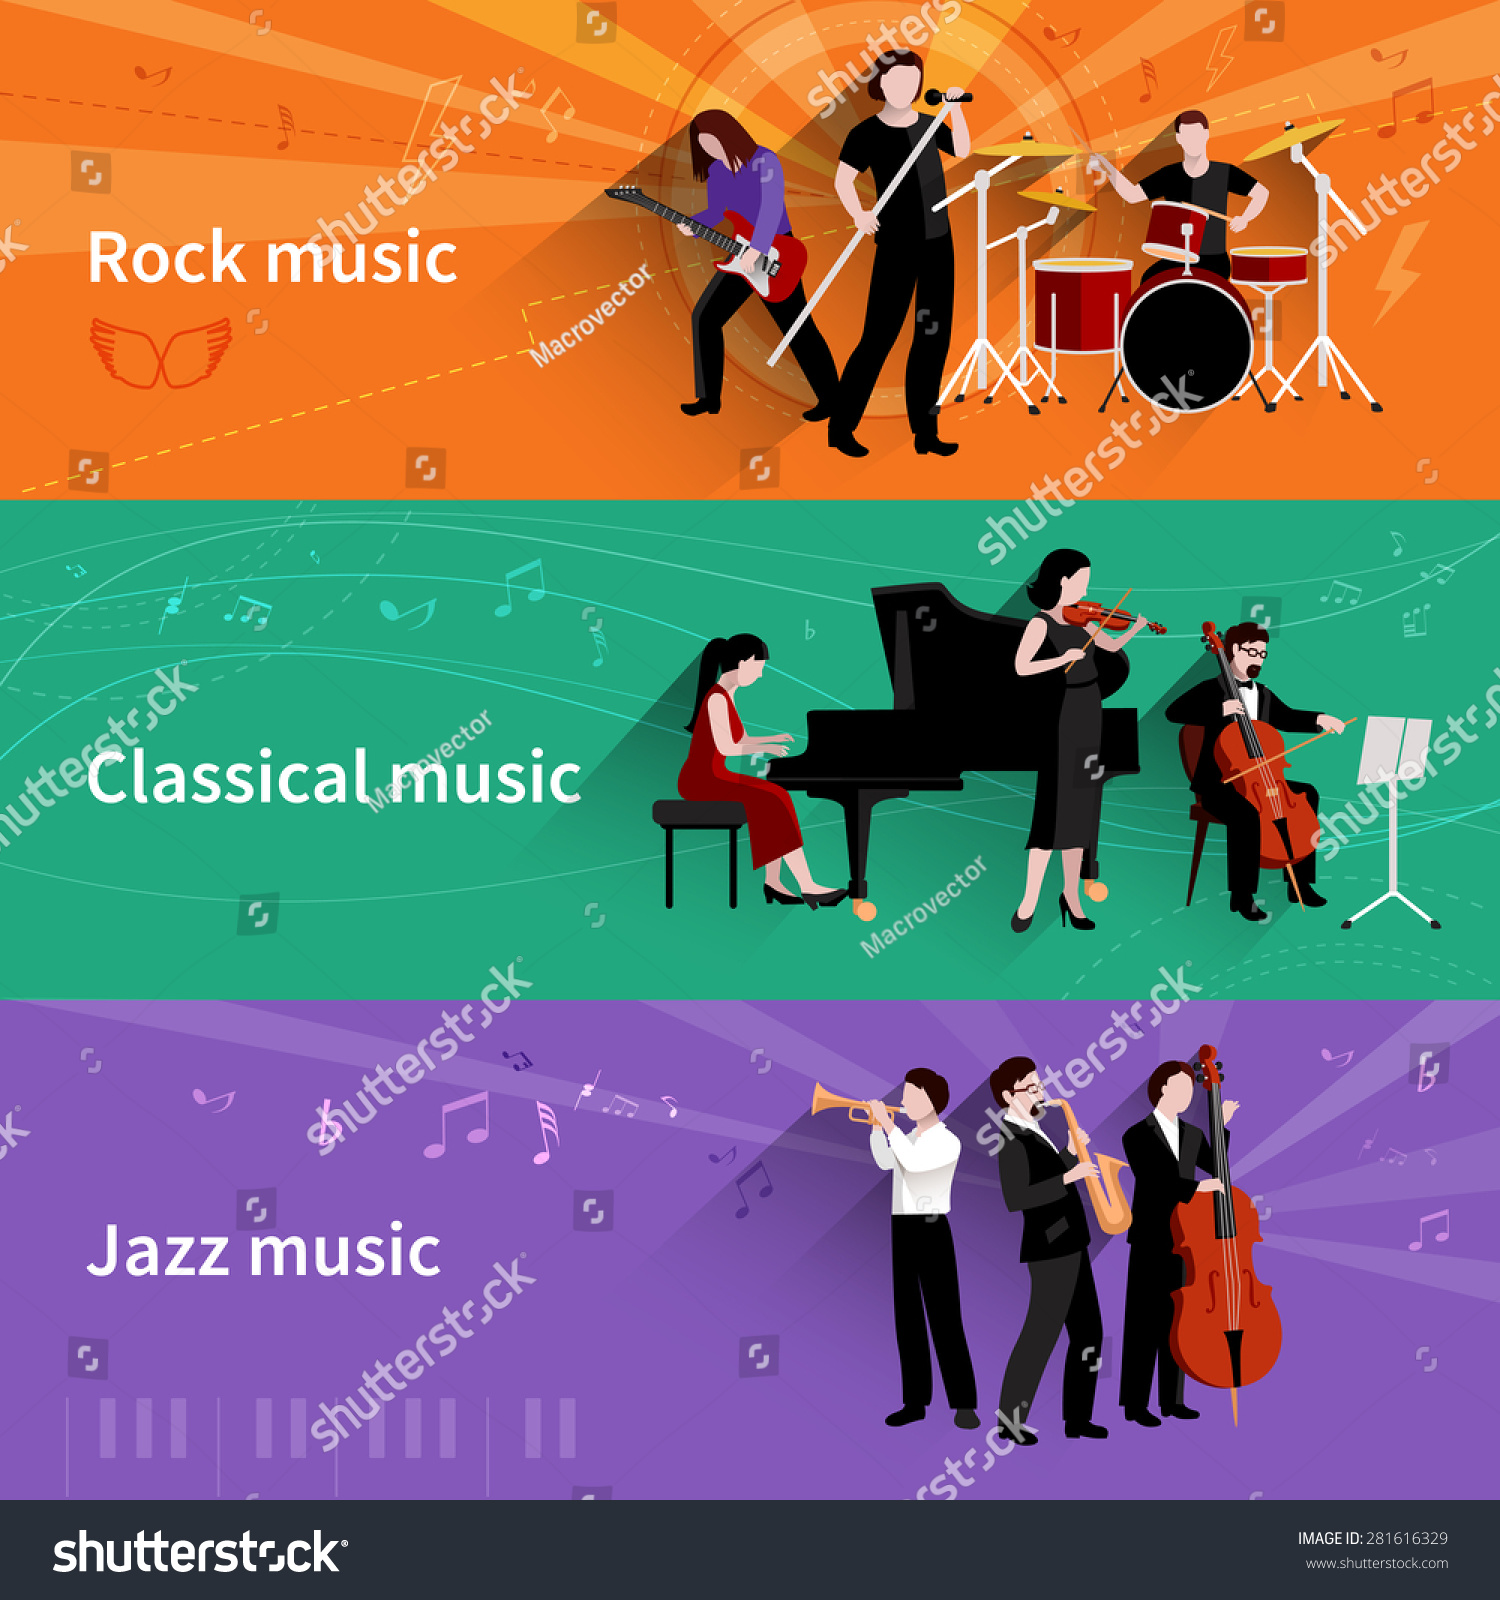 a history of jazz and classical music Music history: history of music: from prehistoric sounds to: classical music, jazz, rock music, pop music, and electronic music (baroque music, joseph haydn, chopin, beethoven book 1.